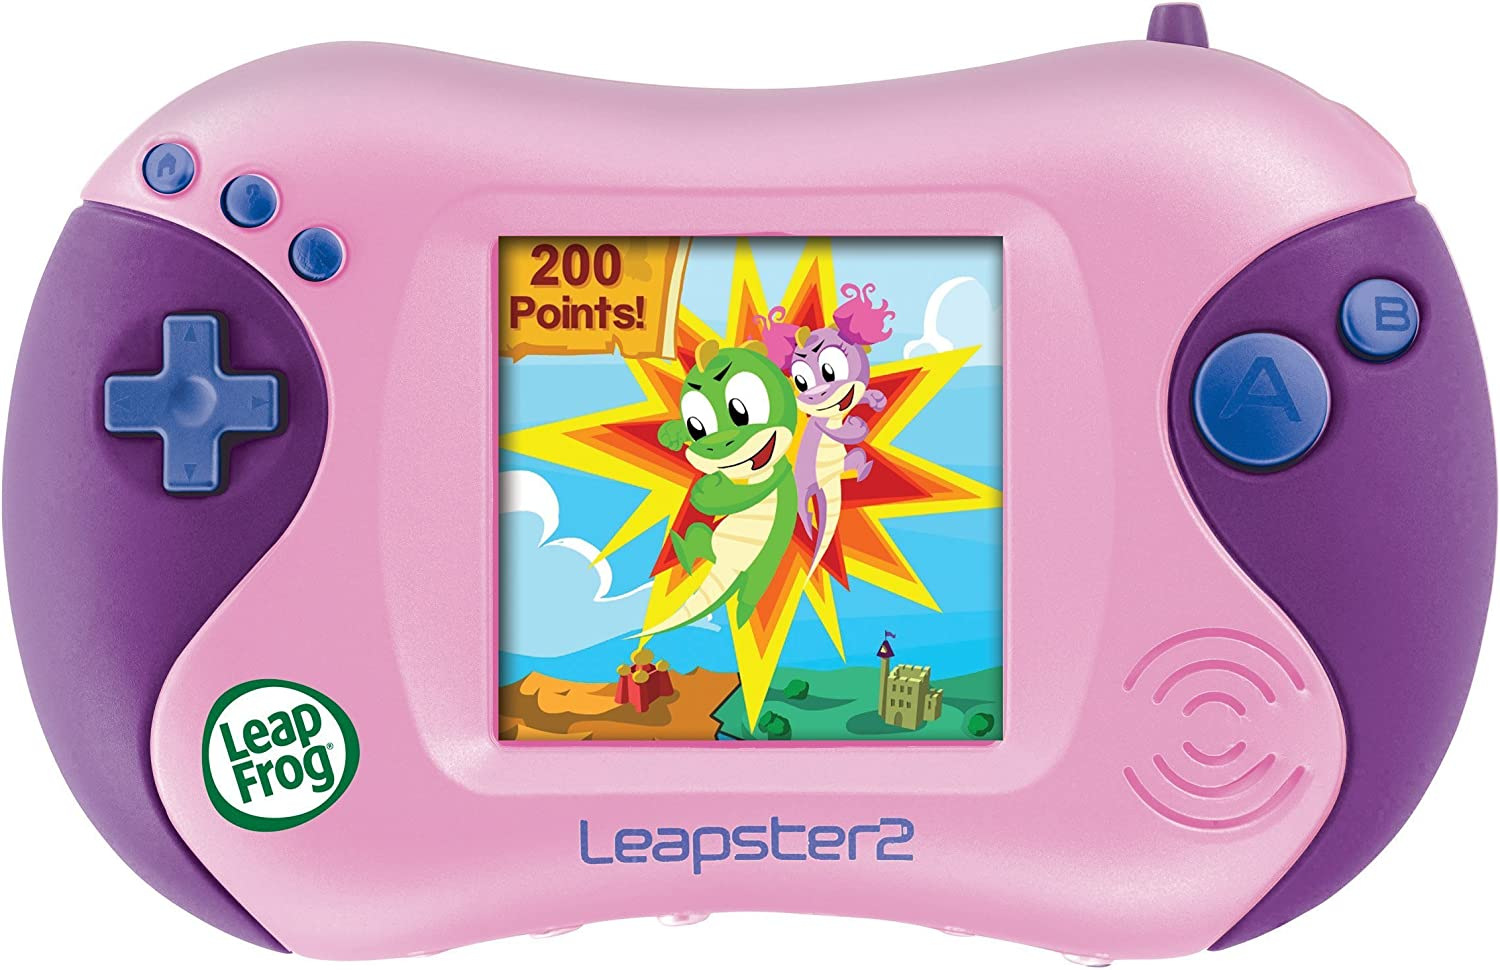 LeapFrog Leapster2 Gaming System (Pink)